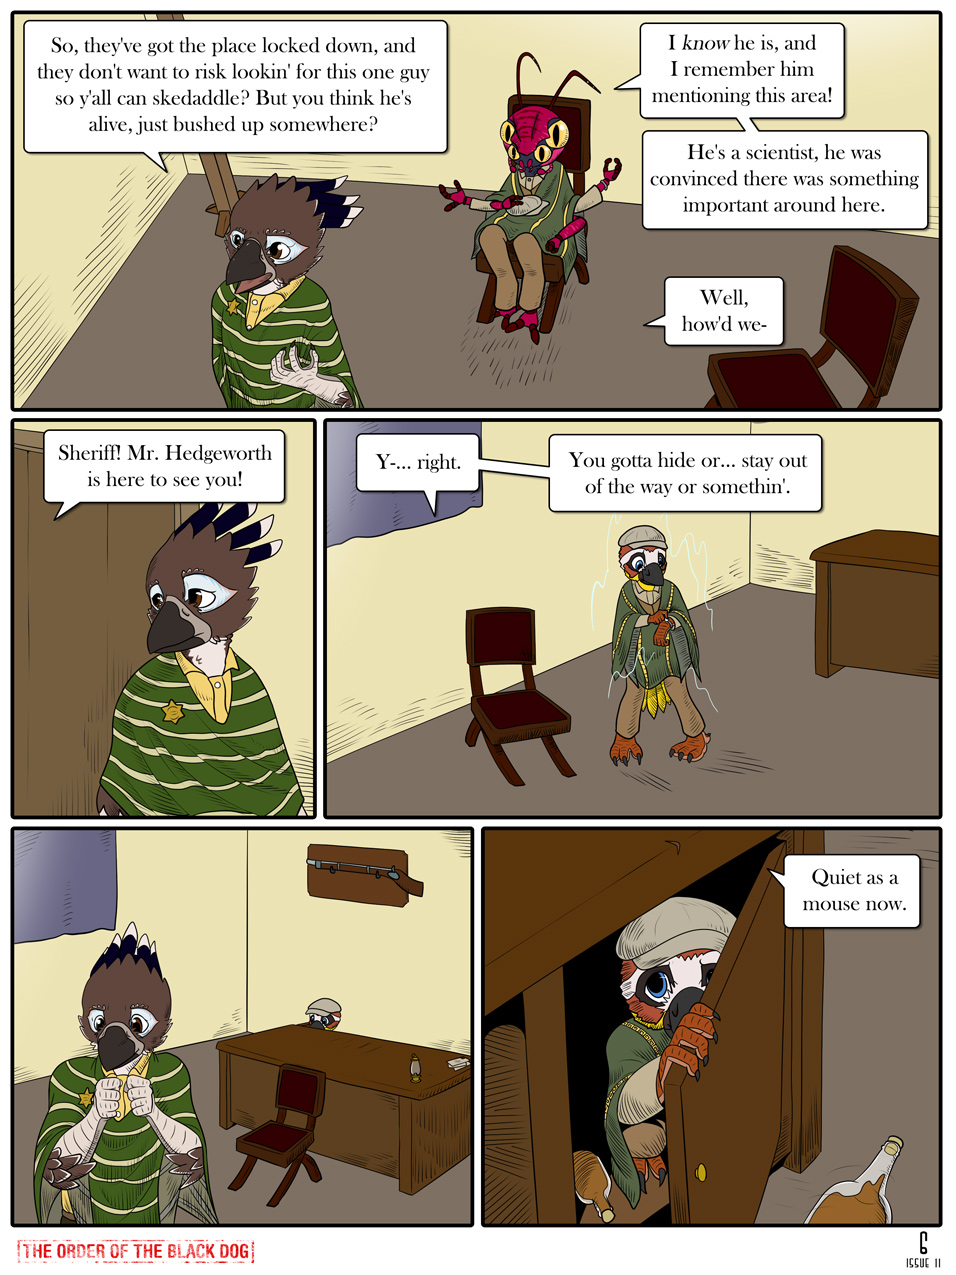 Issue 11, Page 6